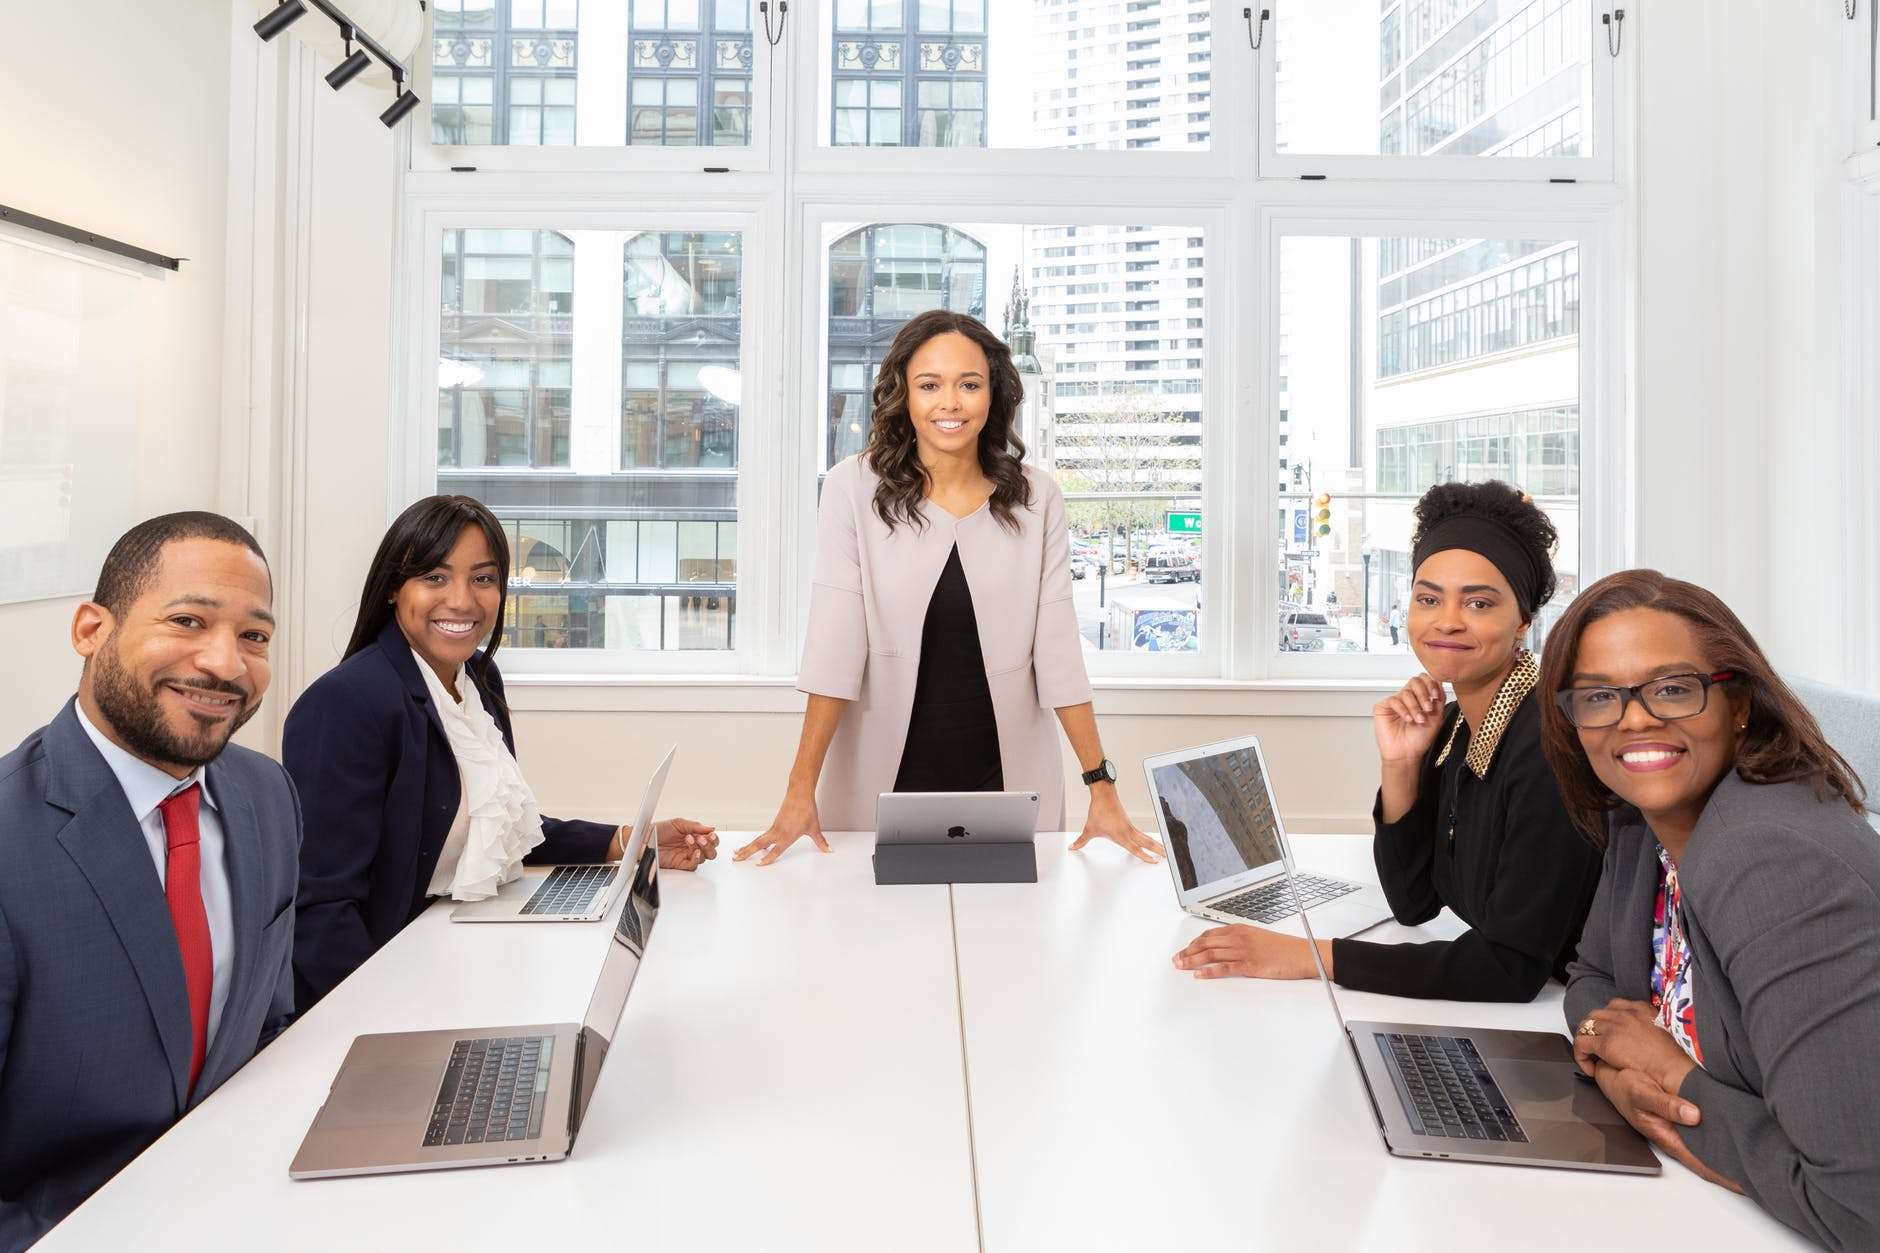 boss at the head of a conference room table with her smiling team